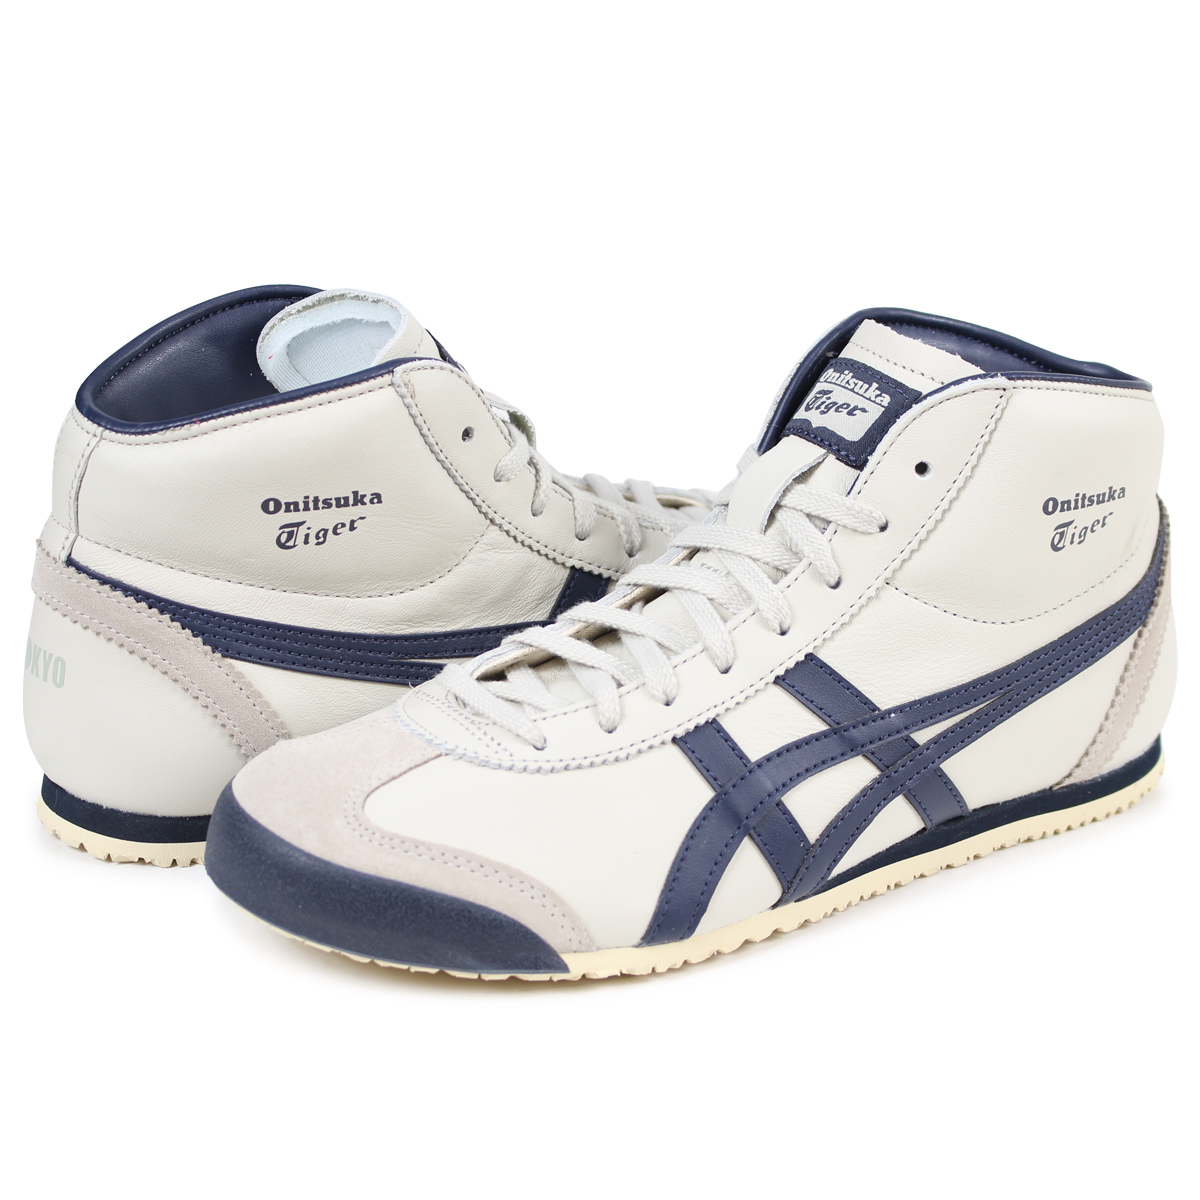 buy popular f05db b3886 Onitsuka Tiger MEXICO MID RUNNER Onitsuka tiger Mexico mid runner men  sneakers DL328-1659 THL328-1659 white